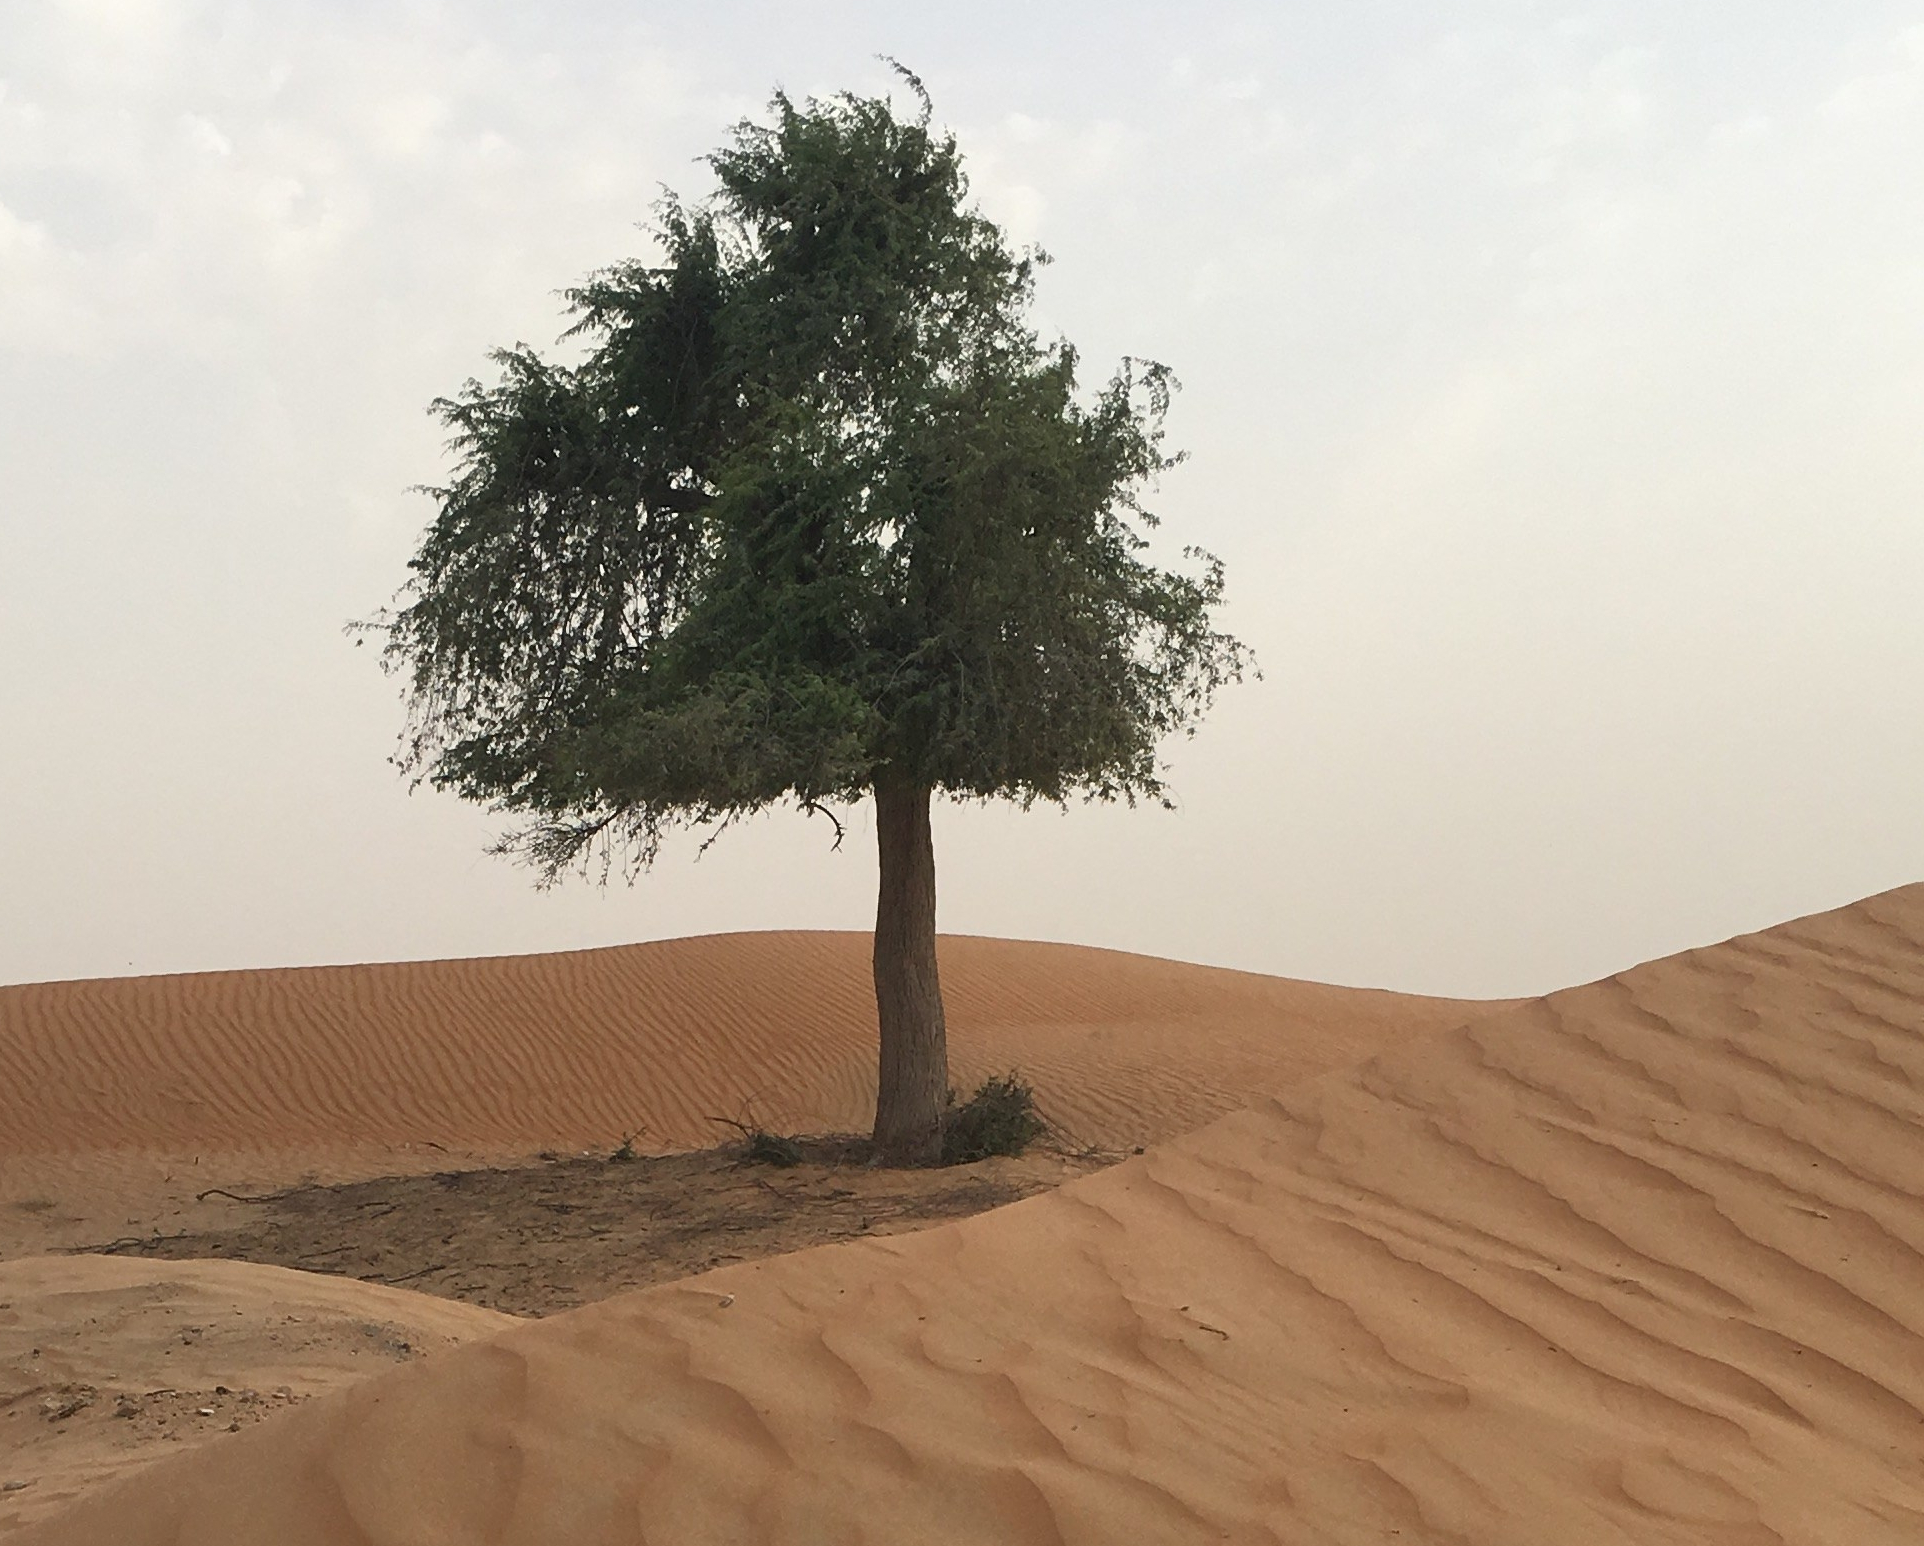 Prosopis tree deep in the desert